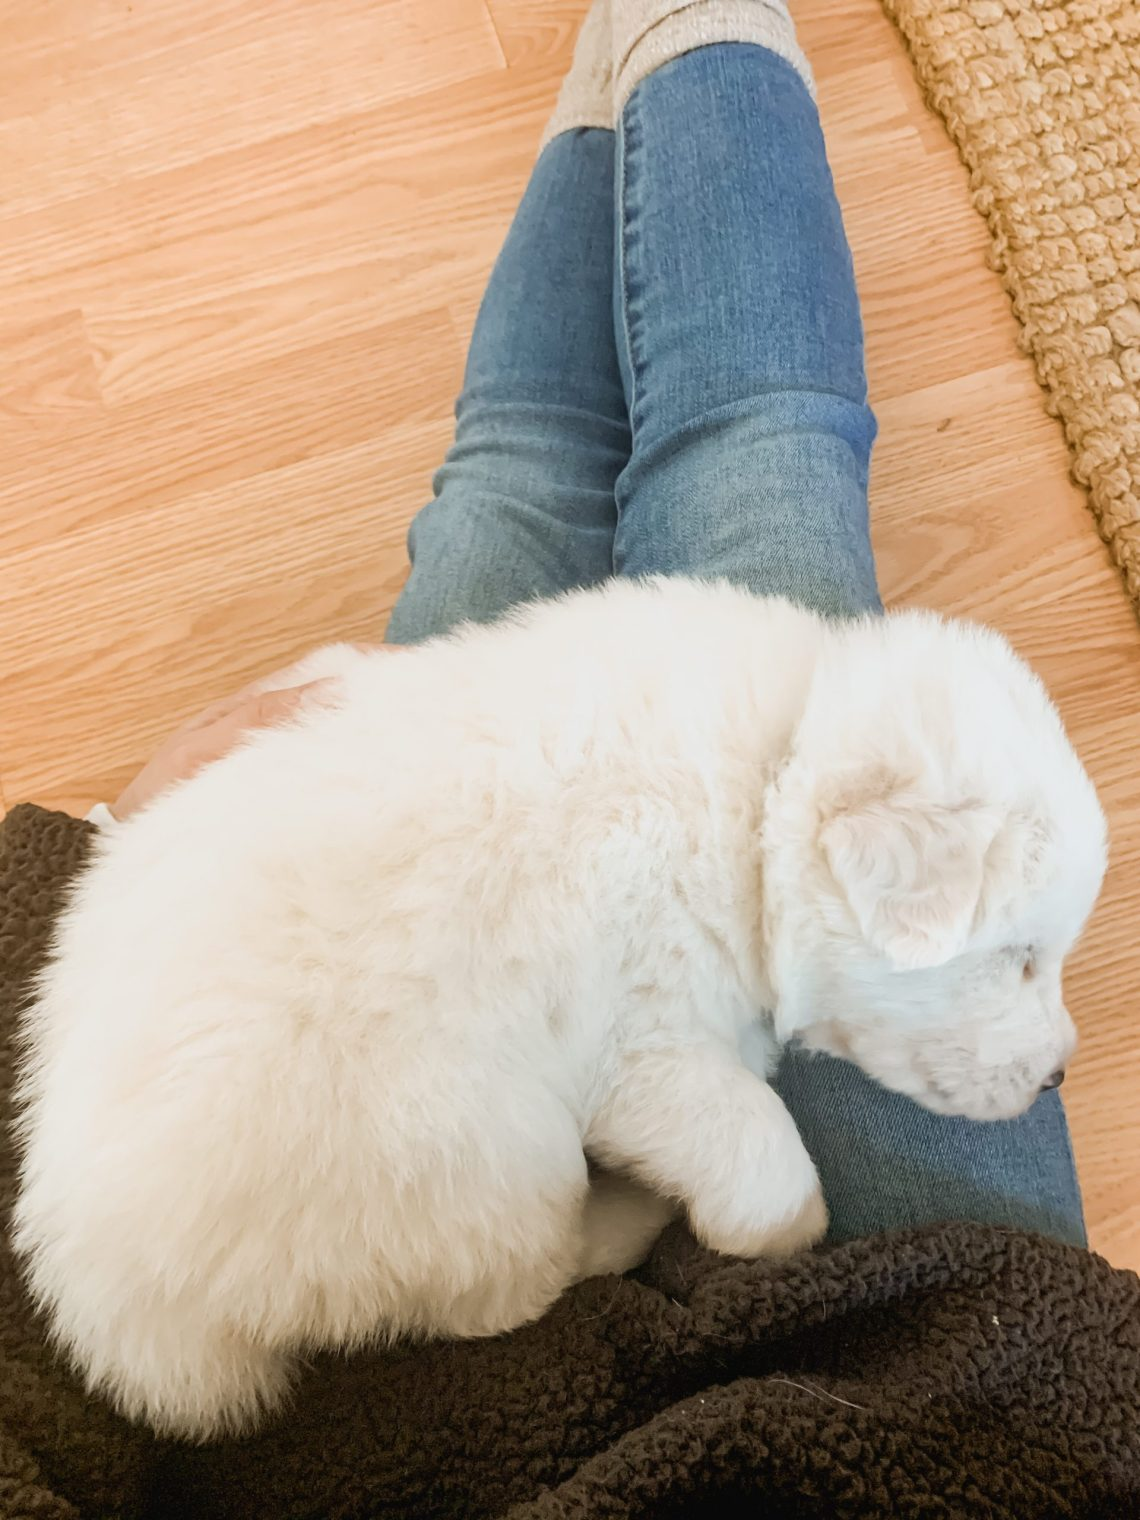 Meet Our Great Pyrenees LGD Puppy!